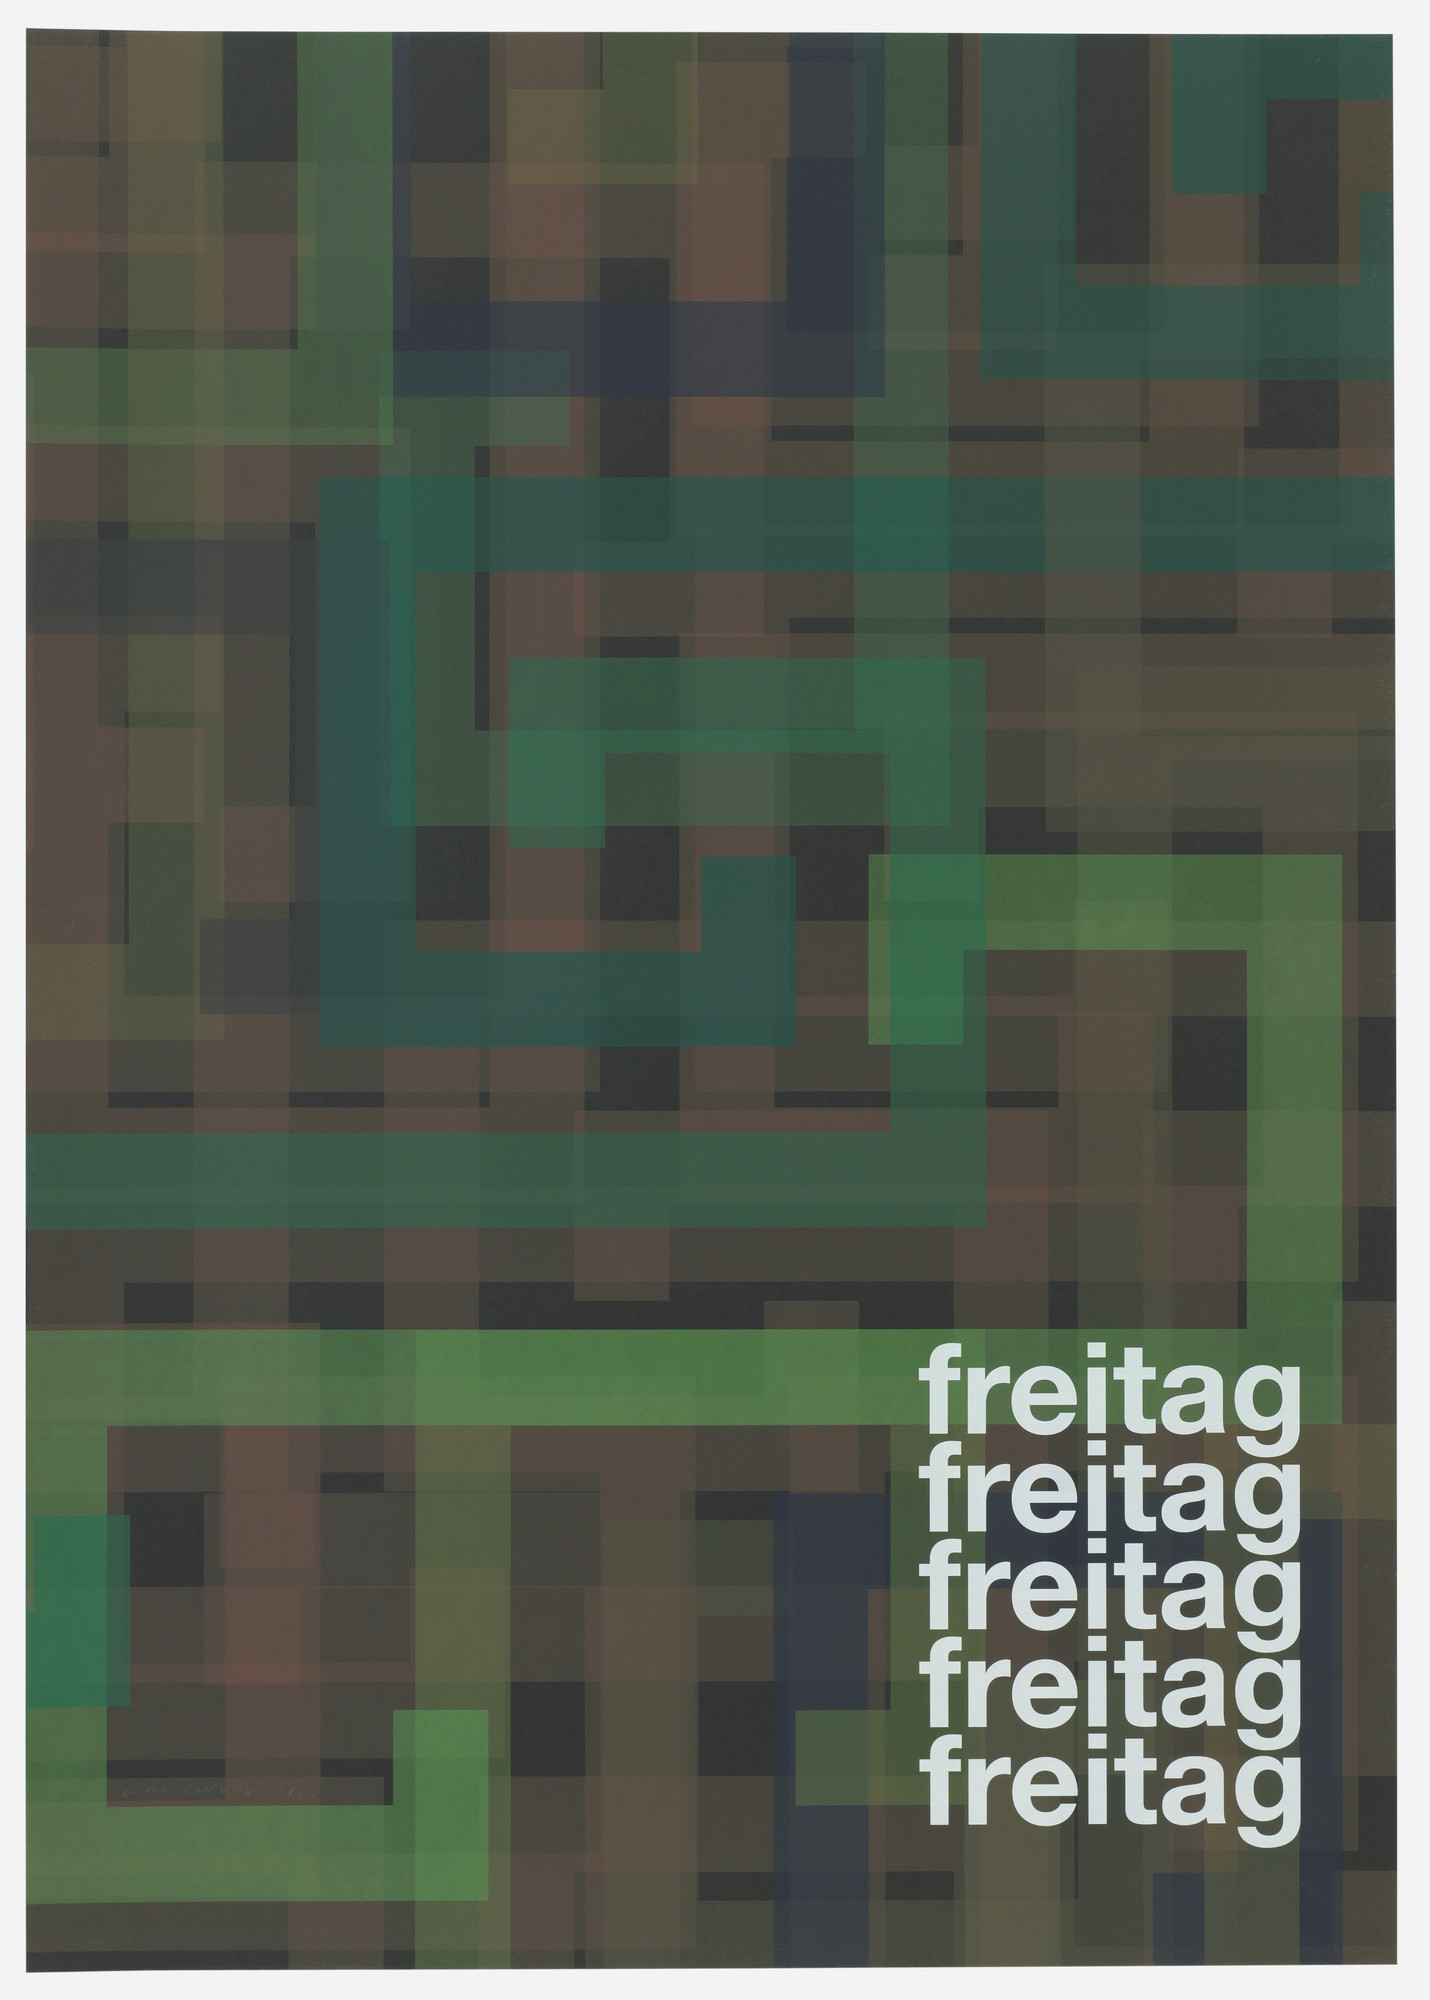 Liam Gillick. Freitag (Friday) from Guide. 2004